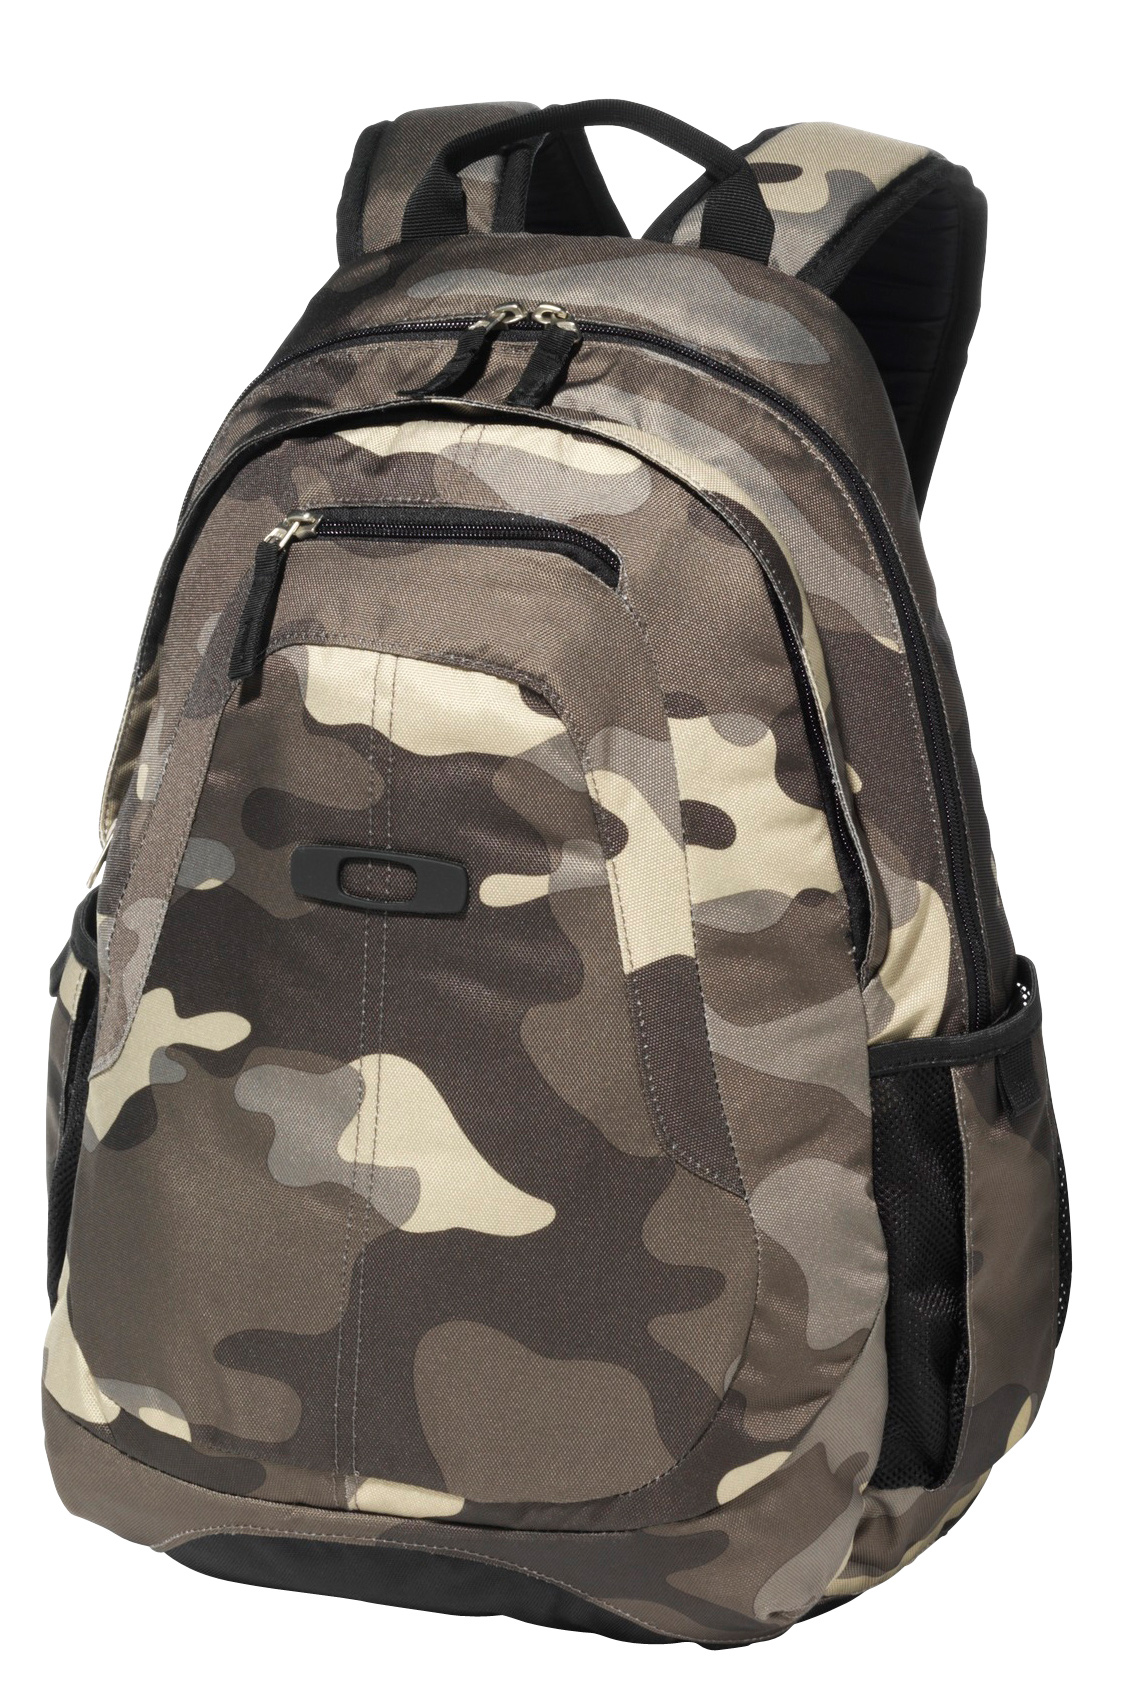 "The Base Load Pack offers the durable and compact construction that accommodates any adventure. The backpack has top-zip openings for easy access to two storage compartments. Inside, a variety of specialized pockets deliver easy organization, and padded adjustable shoulder straps keep every excursion comfortable. Designed to keep 15"" laptops secure with an elastic interior sleeve, the Base Load Pack provides the versatile function ideal for hybrid athletes on the go.Key Features of the Oakley Base Load Pack Backpack: Padded internal sleeve holds most 15"" laptops Padded adjustable shoulder straps allow for comfortable carrying Brushed optics pocket stores eyewear separately and safely Expansion side pockets keep water bottles accessible 25L Capacity 19"" H x 14"" W x 4.5"" D 100% Polyester - $45.00"